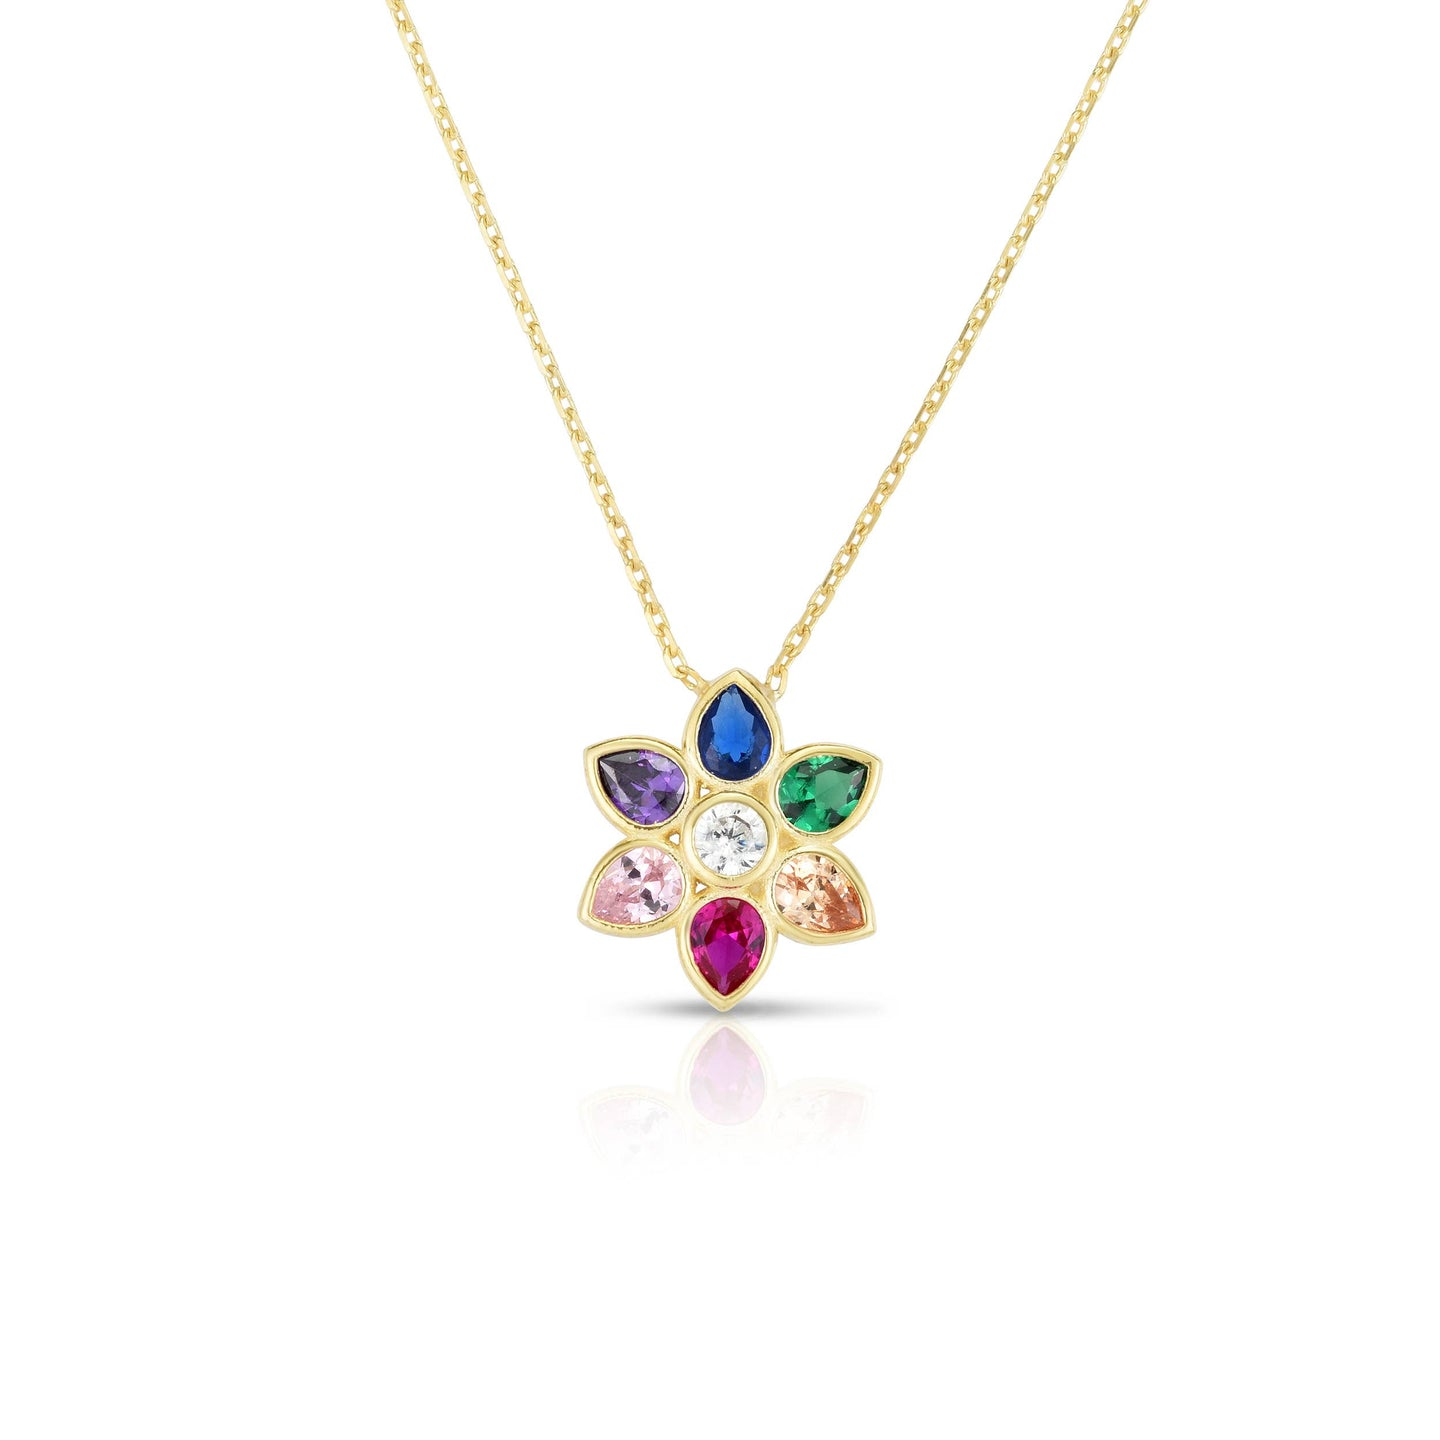 Milanesi And Co Gold Plated Rainbow Flower Necklace